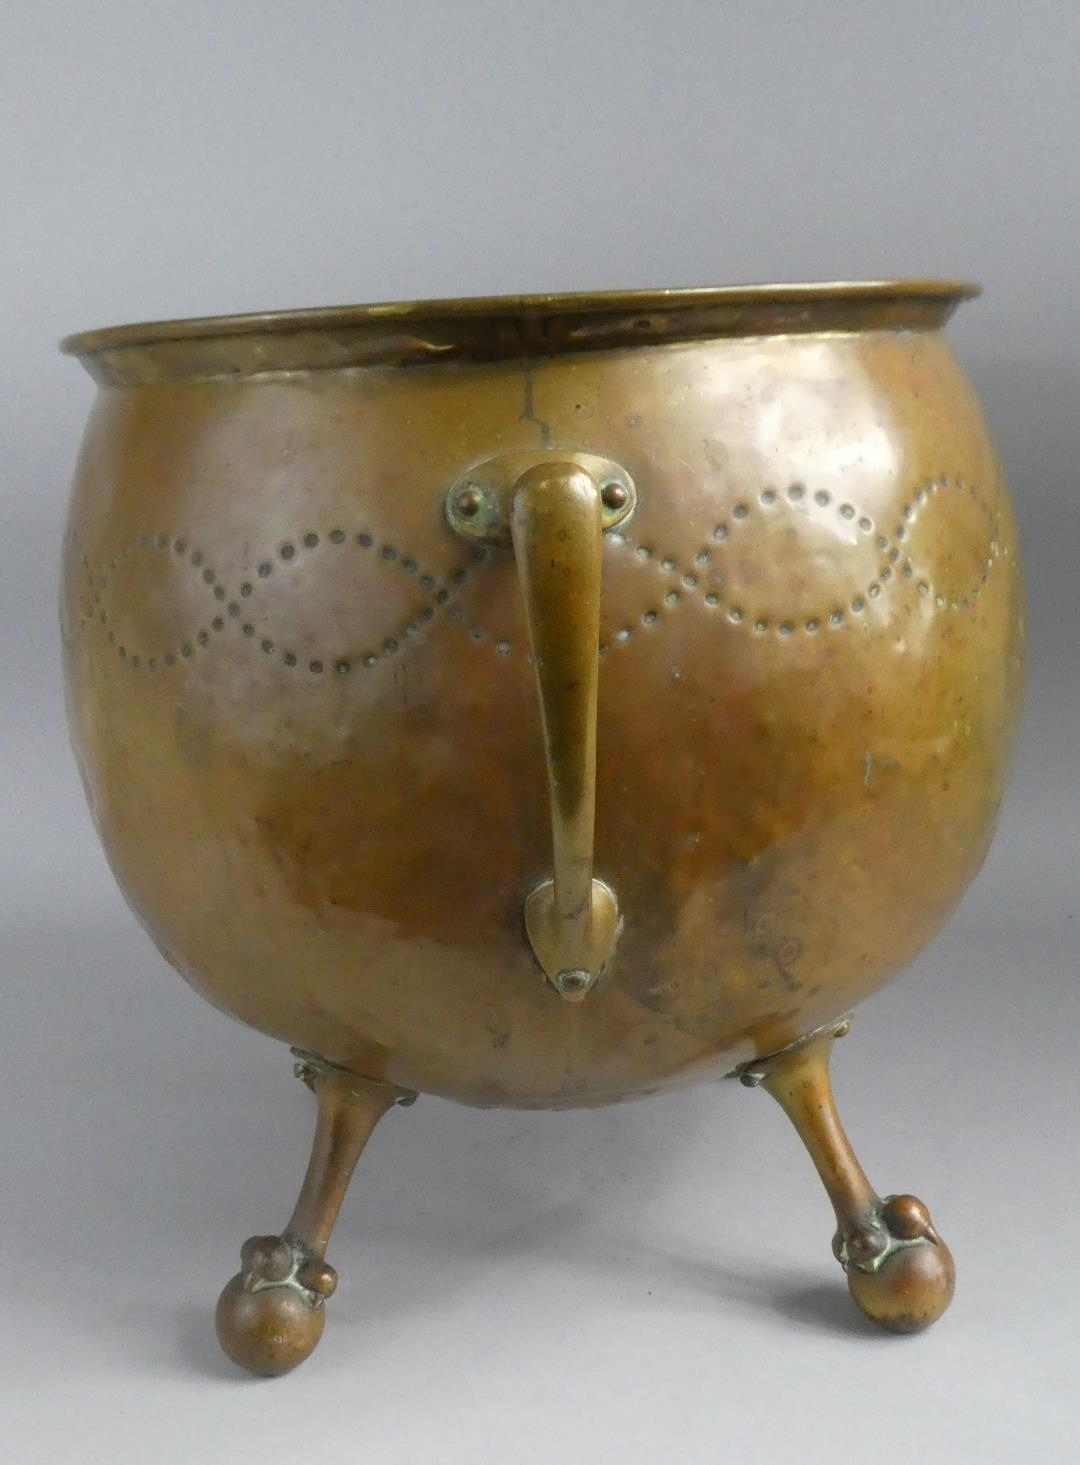 Lot 13 - An Arts and Crafts Beaten Brass Globular Coal Bucket/Jardiniere with Stylised Handles and on Four